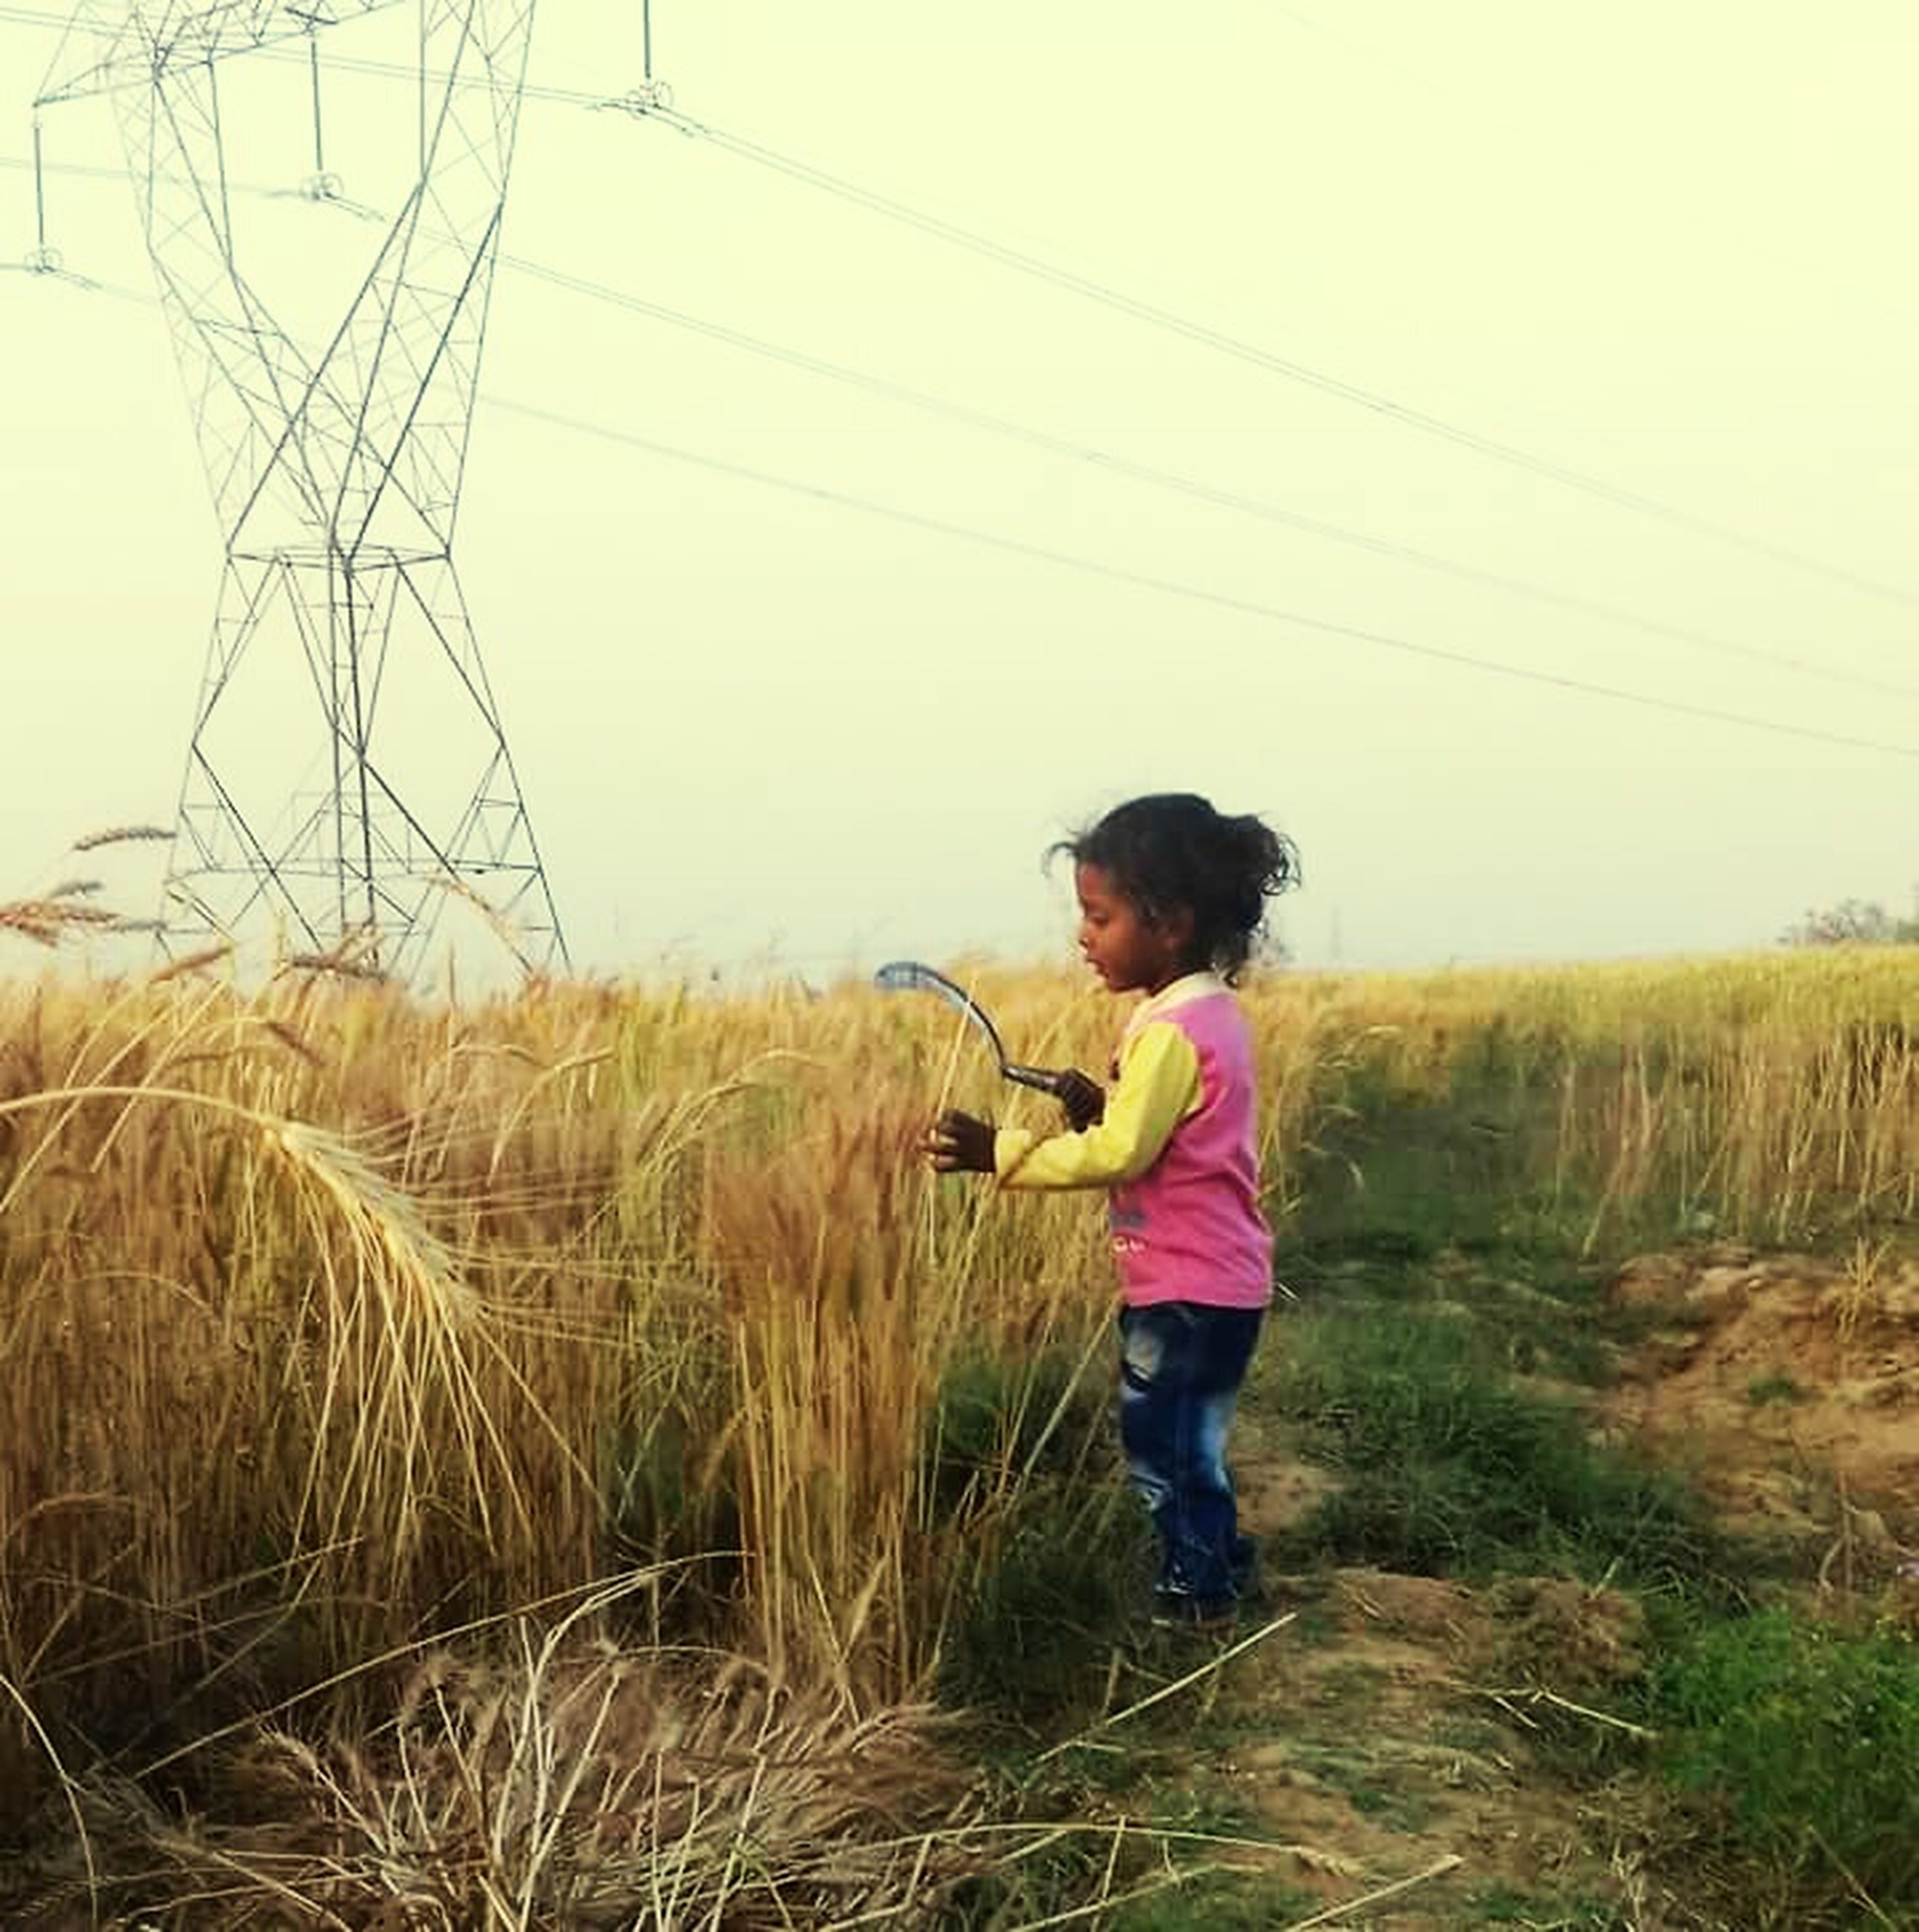 grass, child, childhood, children only, field, nature, full length, outdoors, people, one person, wheat, sky, day